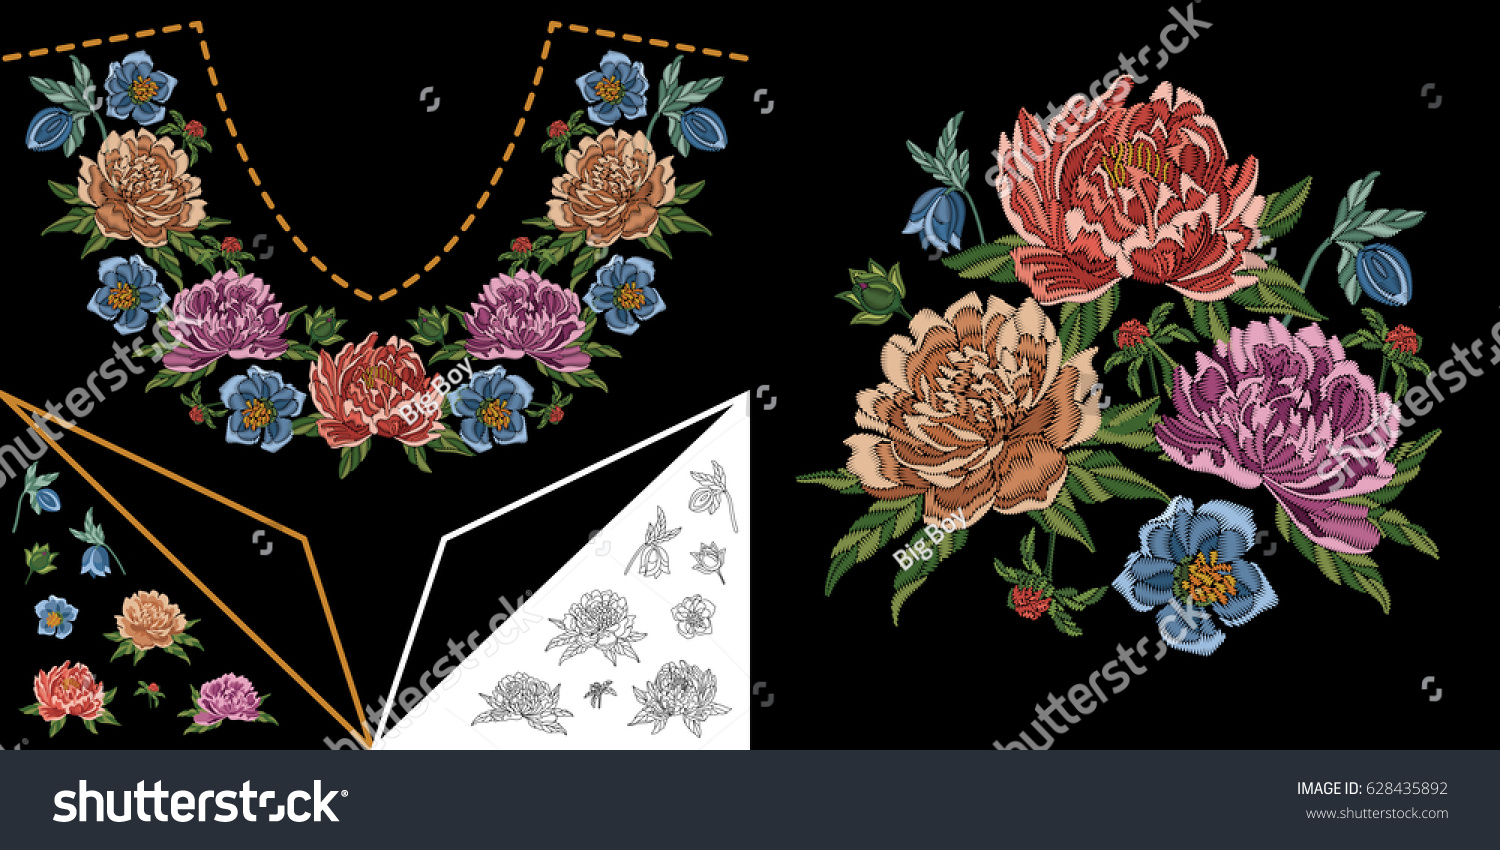 collection of floral design - photo #30